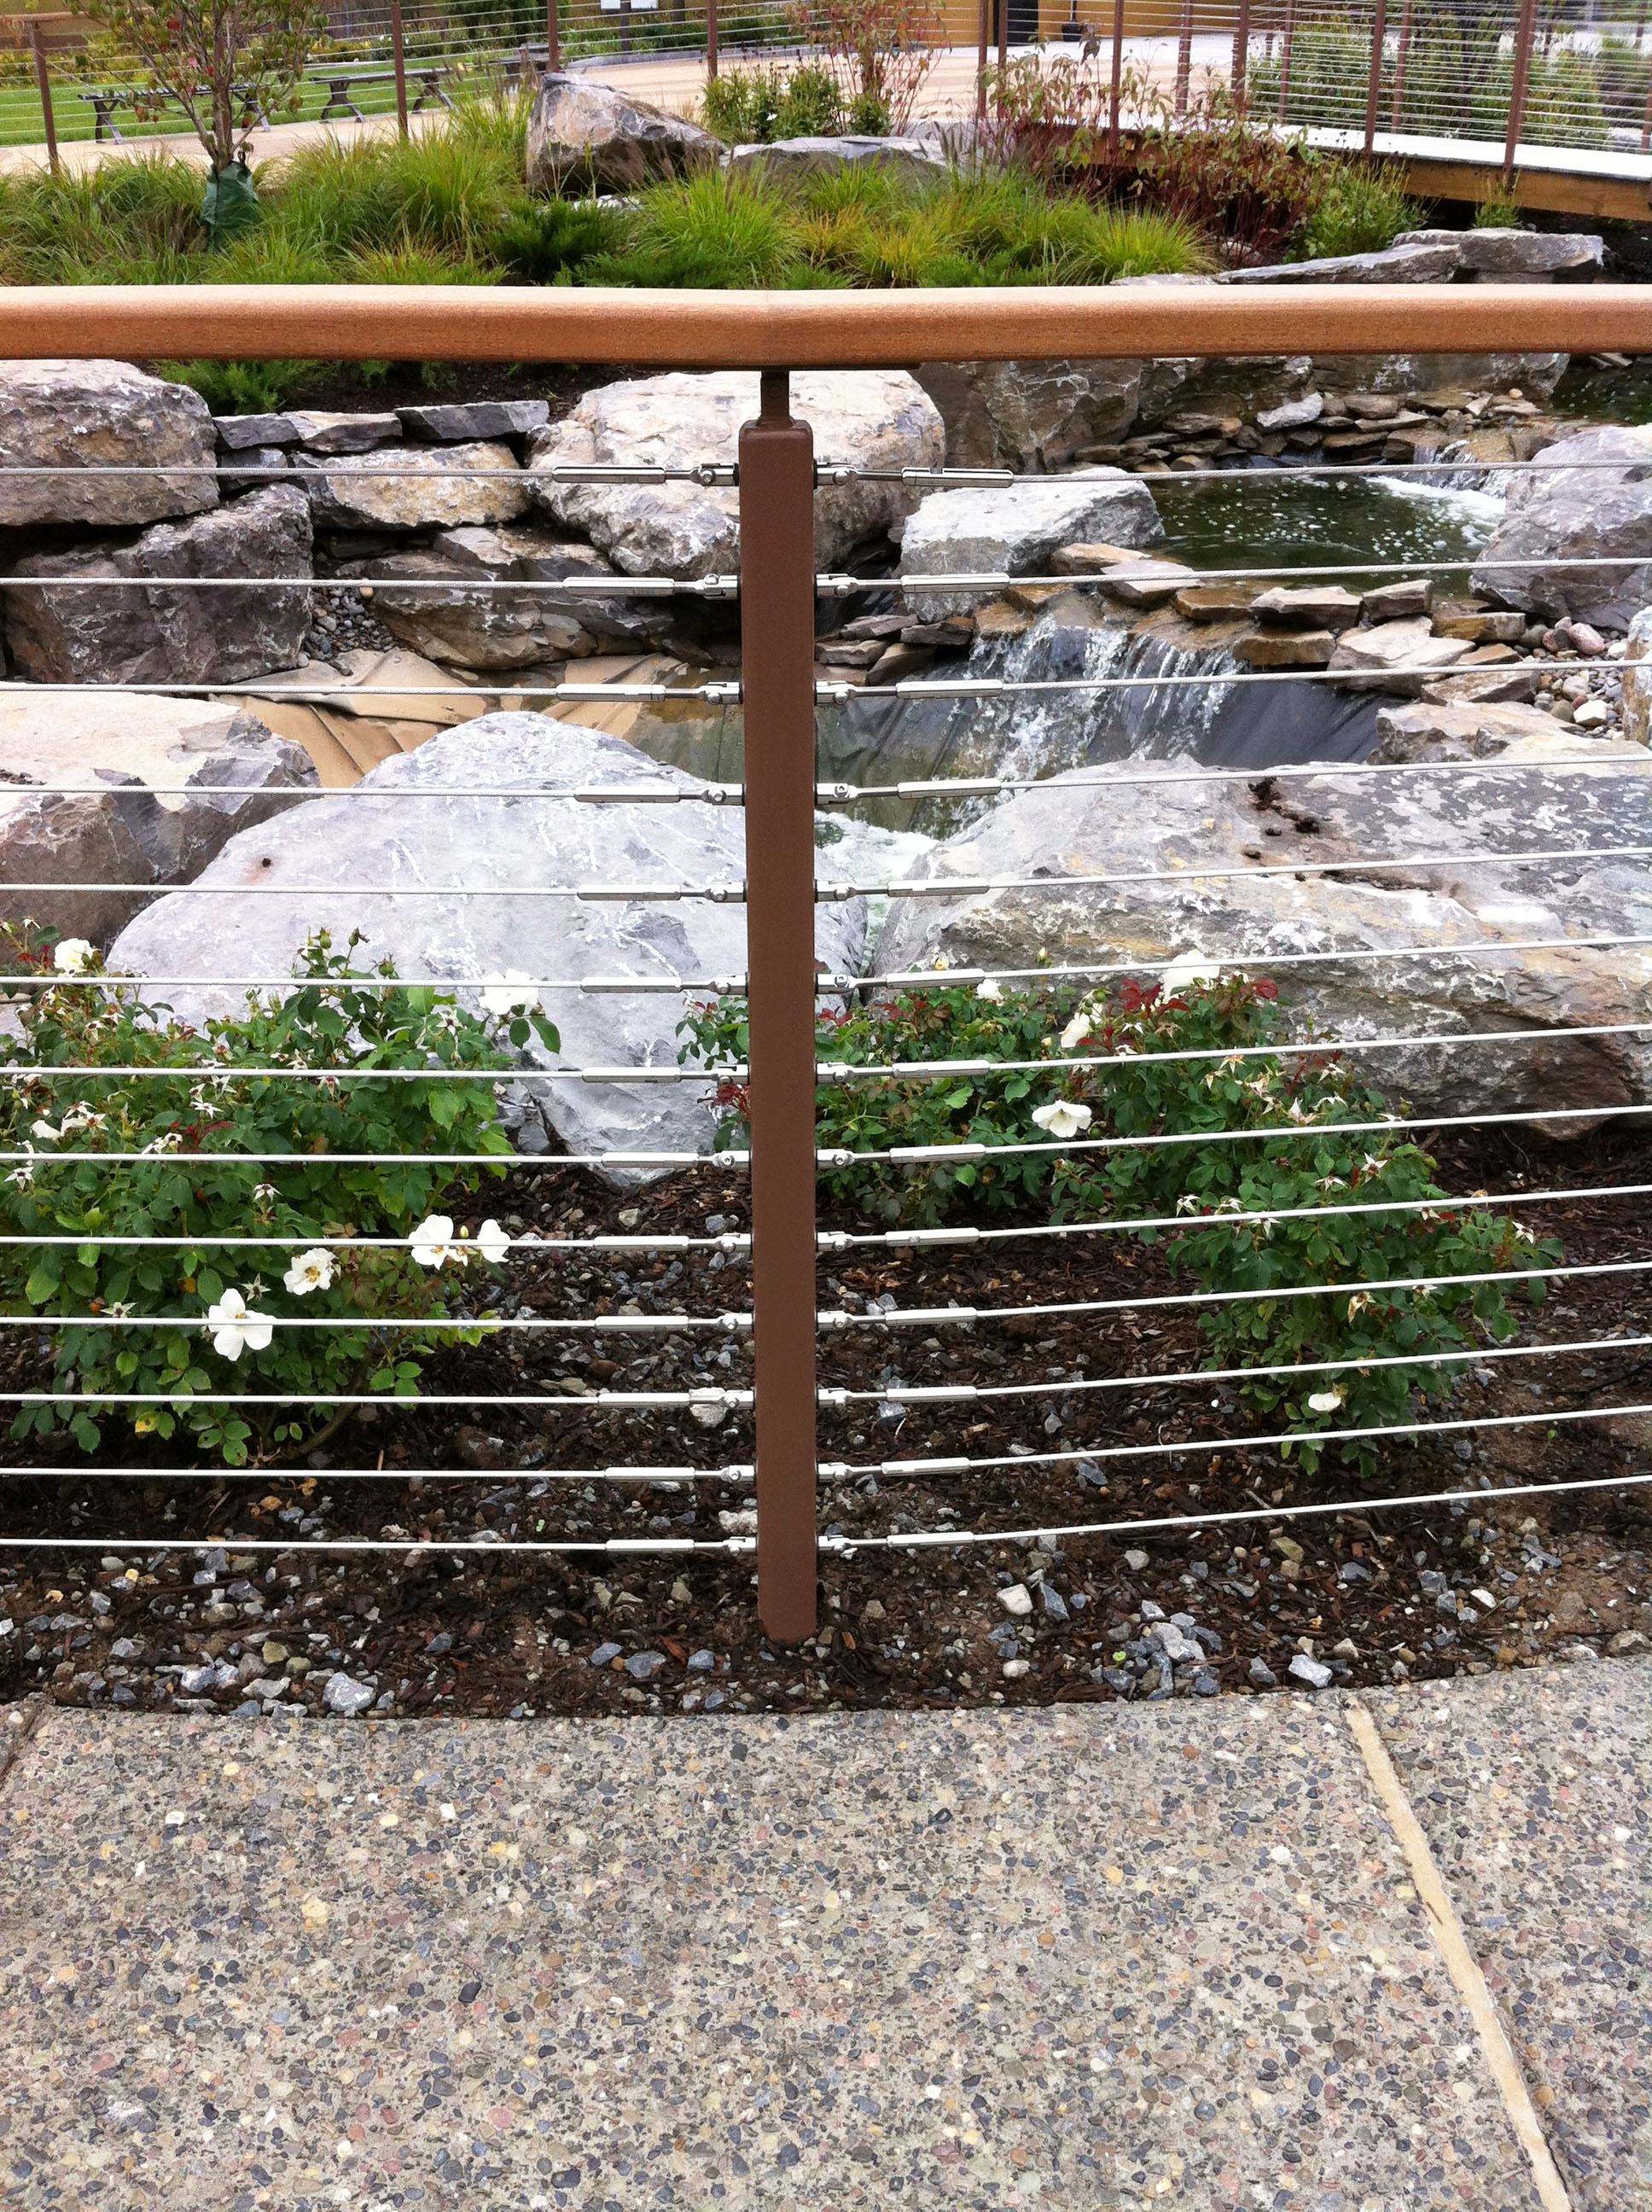 Cable railing with view of the vegetation and rock gardens